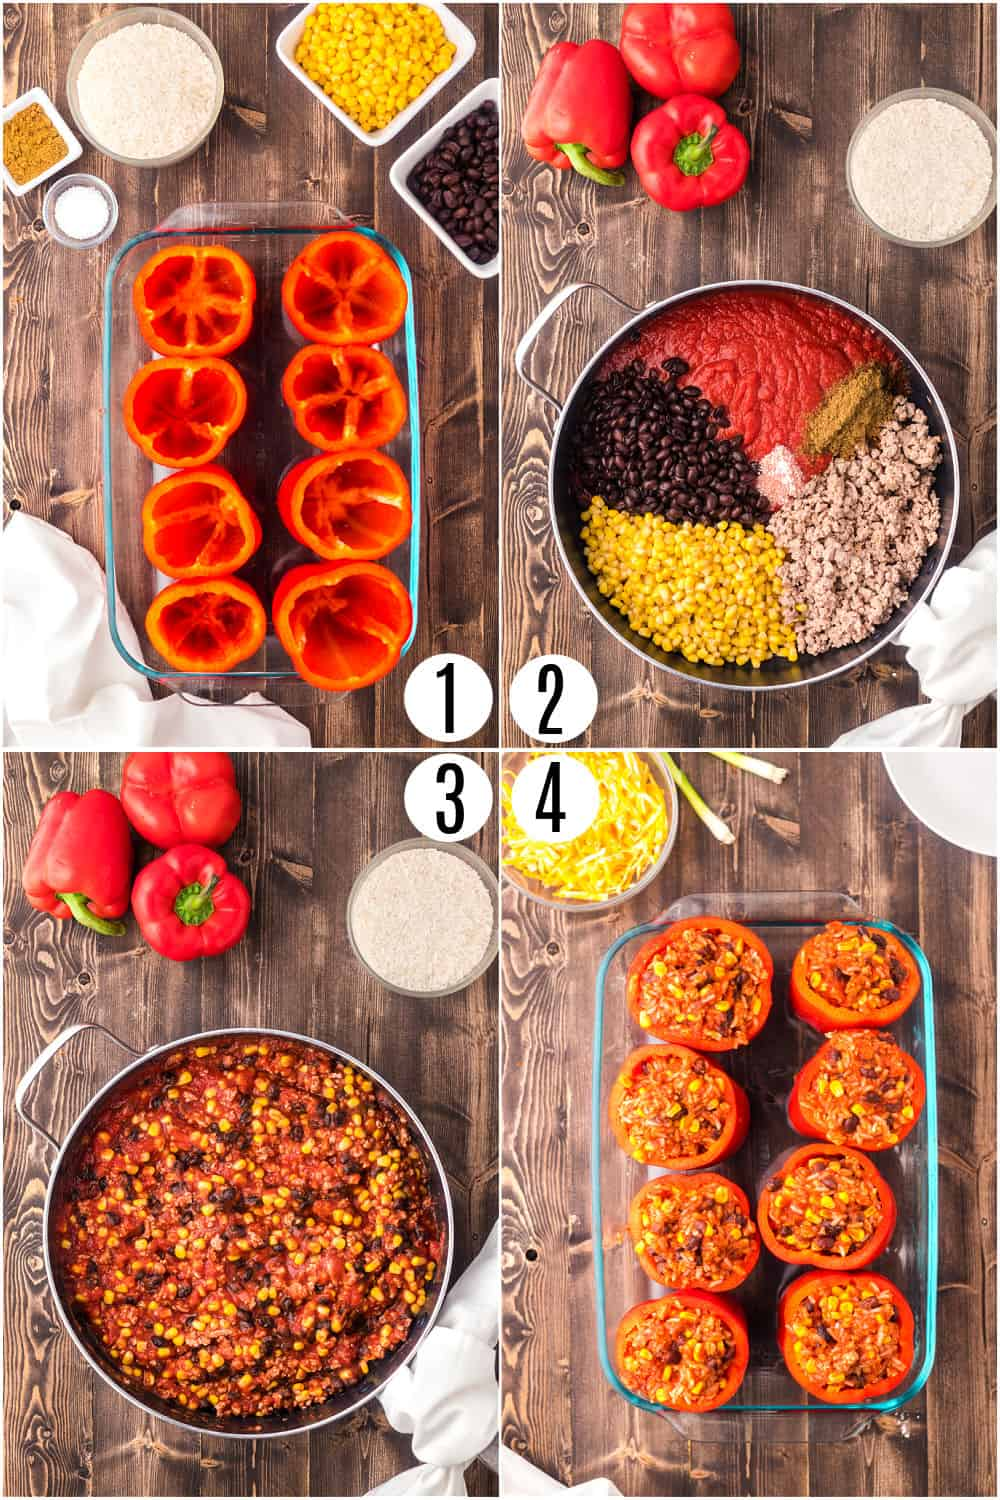 Step by step ingredients to make stuffed peppers.